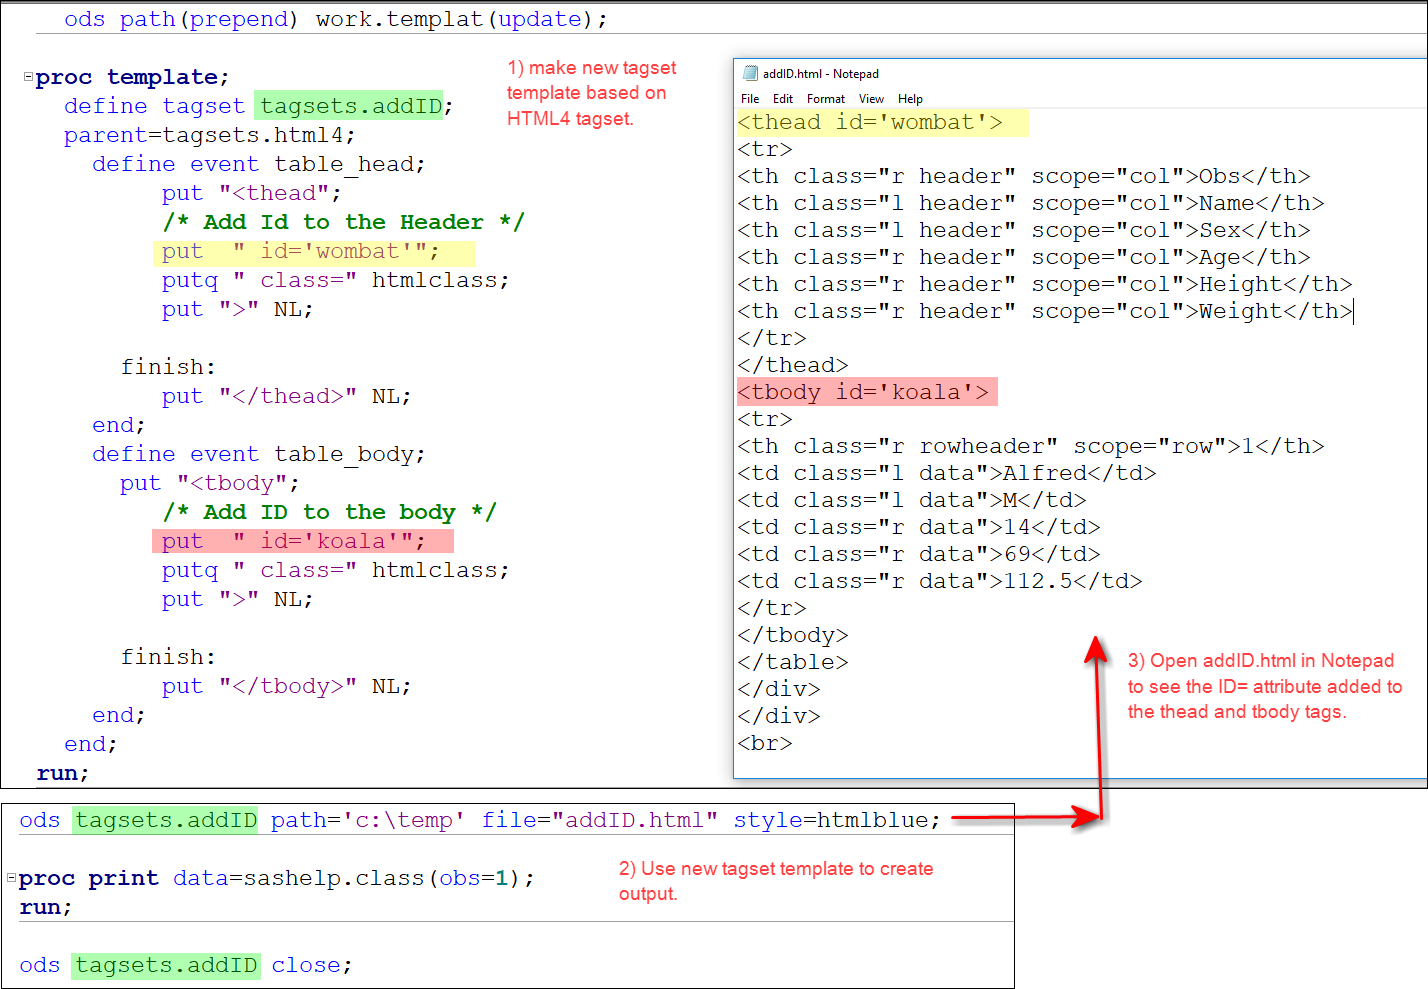 ods html proc report how to set an ID for table, h    - SAS